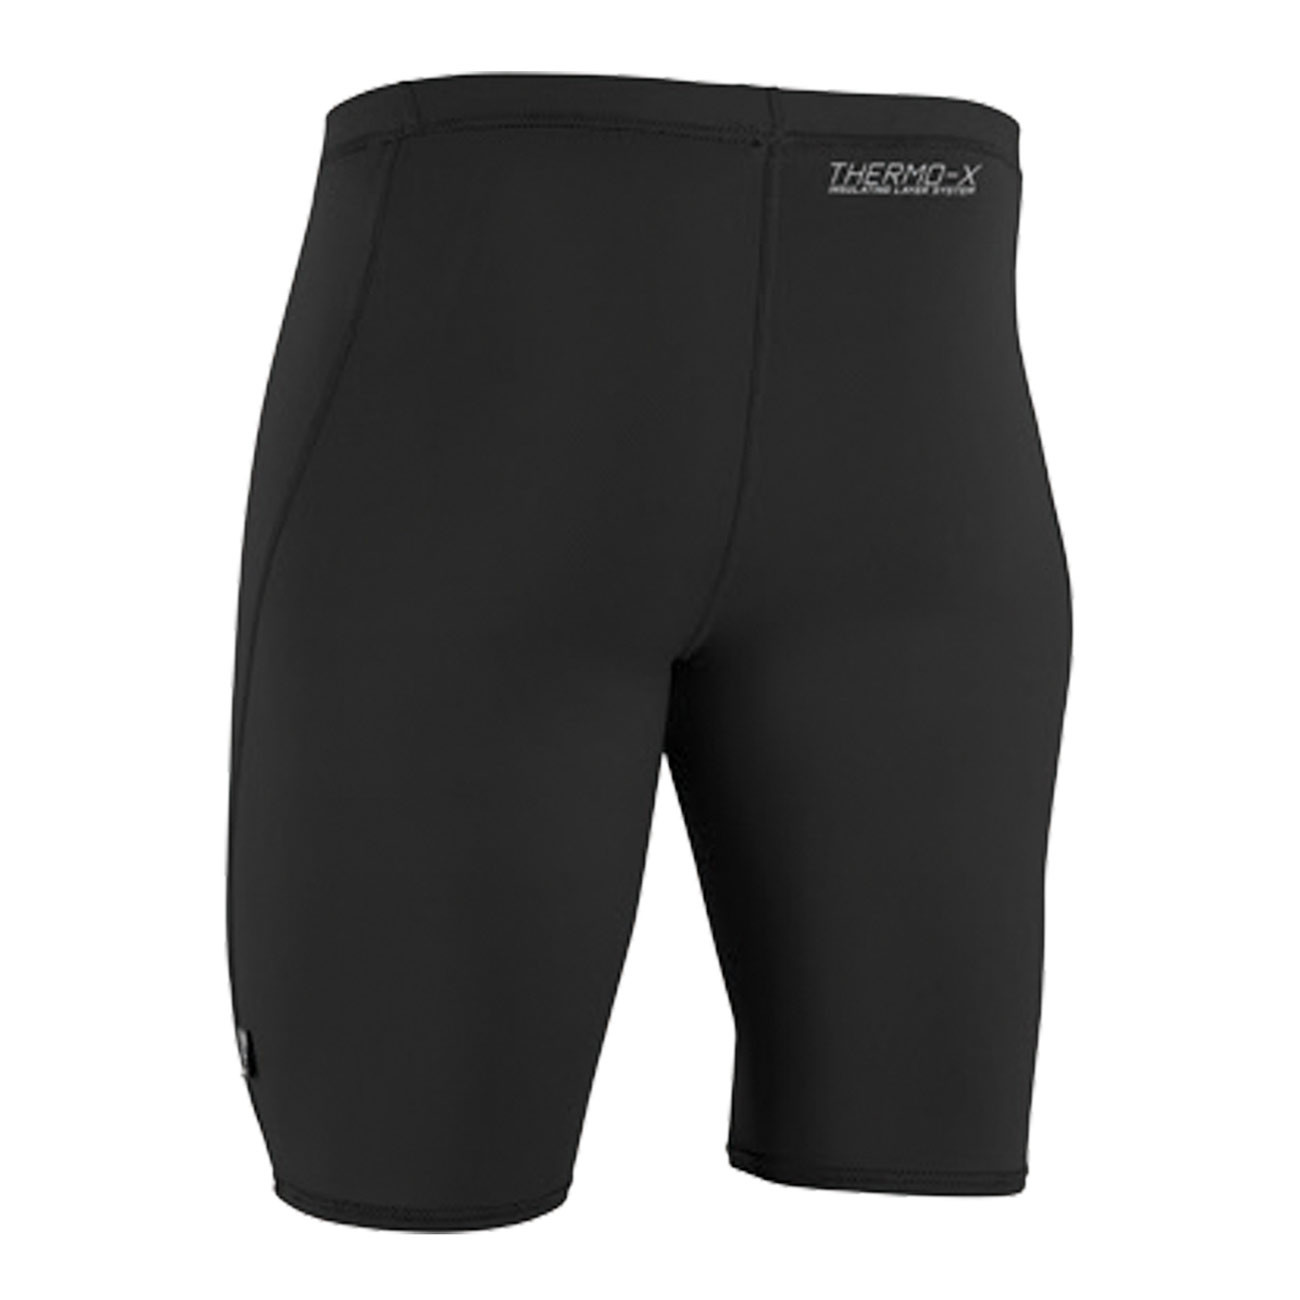 Lycra O'Neill Thermo-X Shorts